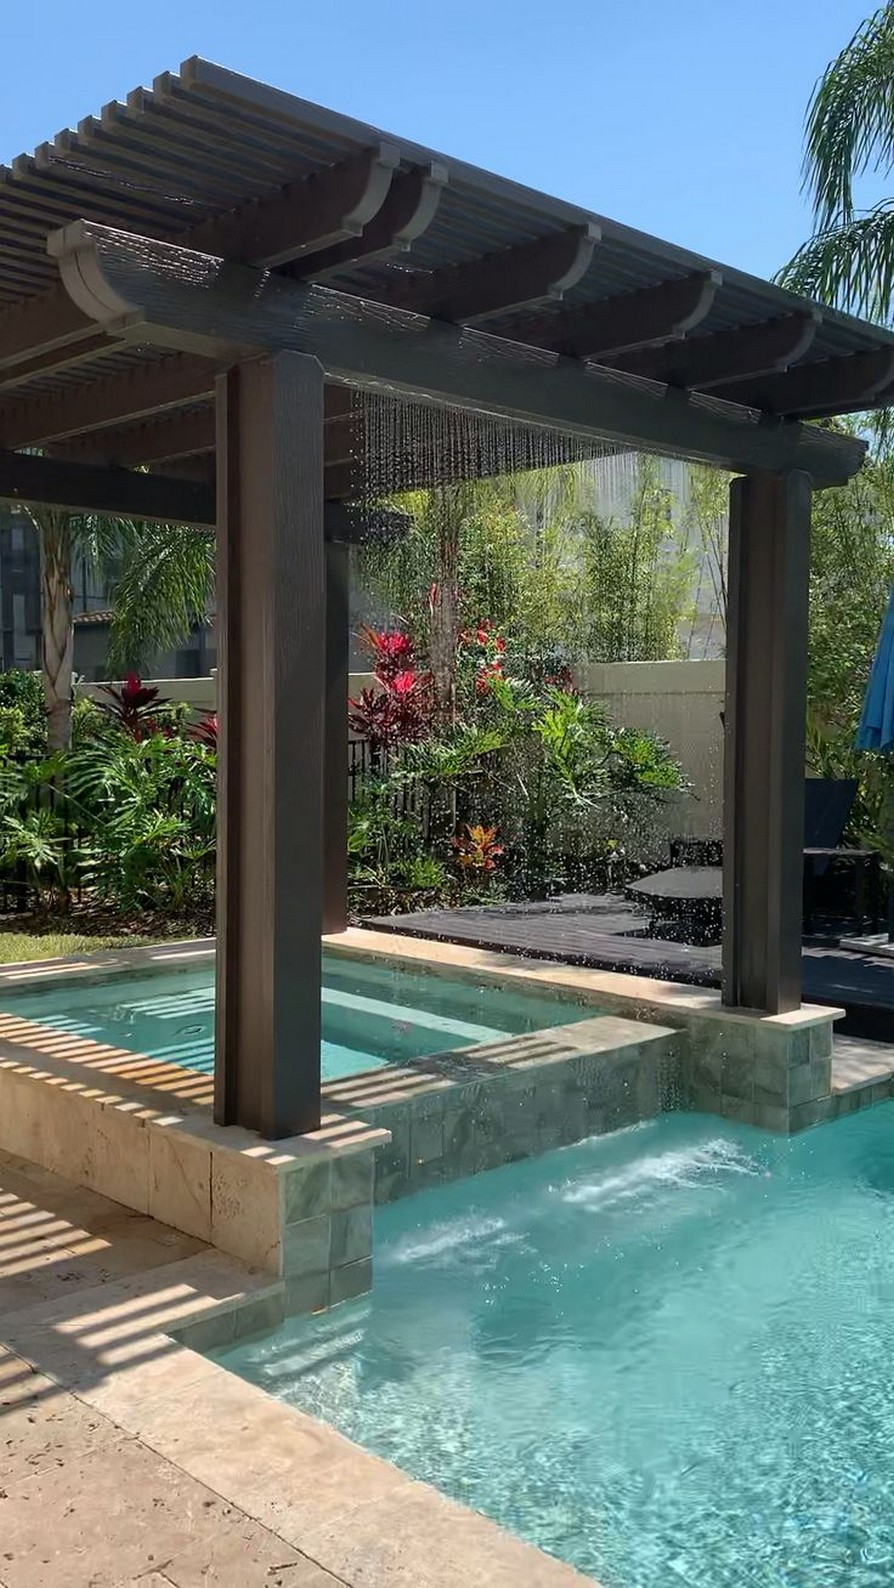 40 Fascinating Pool House Ideas 20